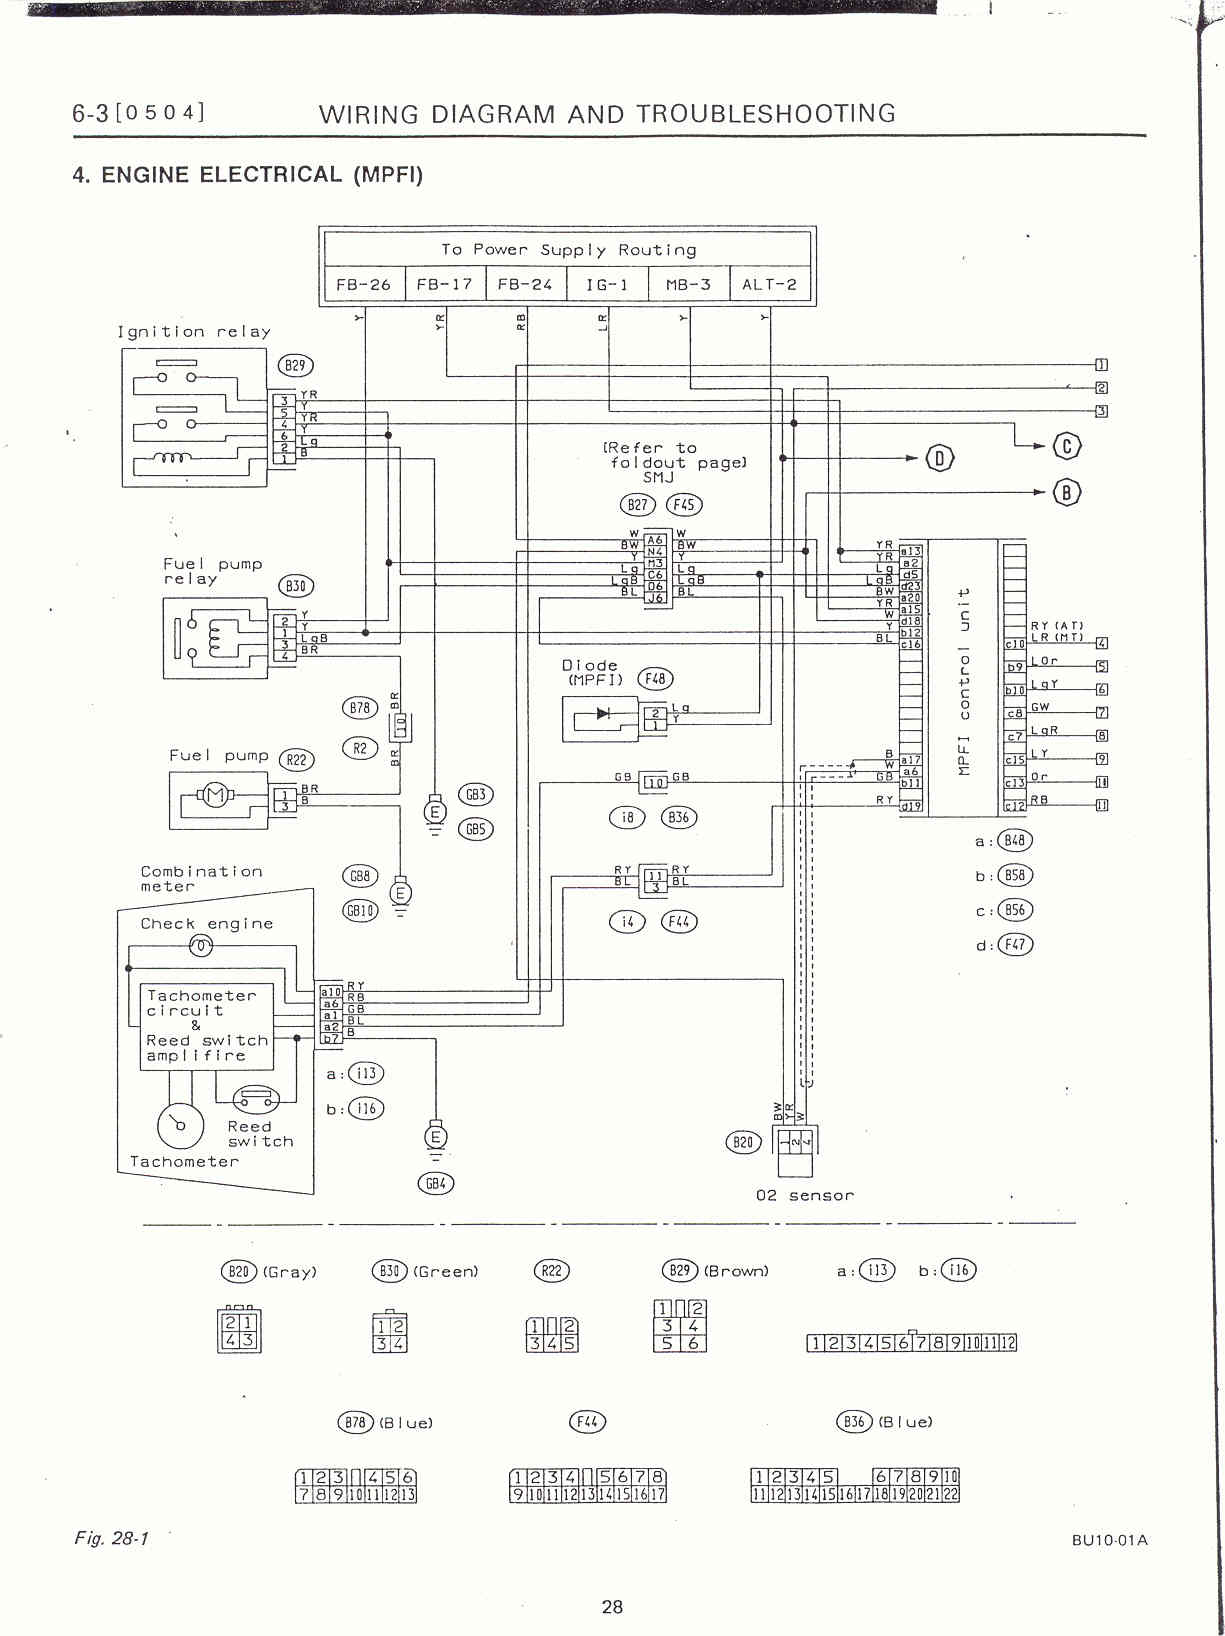 subaru 1990 legacy wiring diagram fuel delivery issues svx - 1990 to present legacy, impreza ... #5